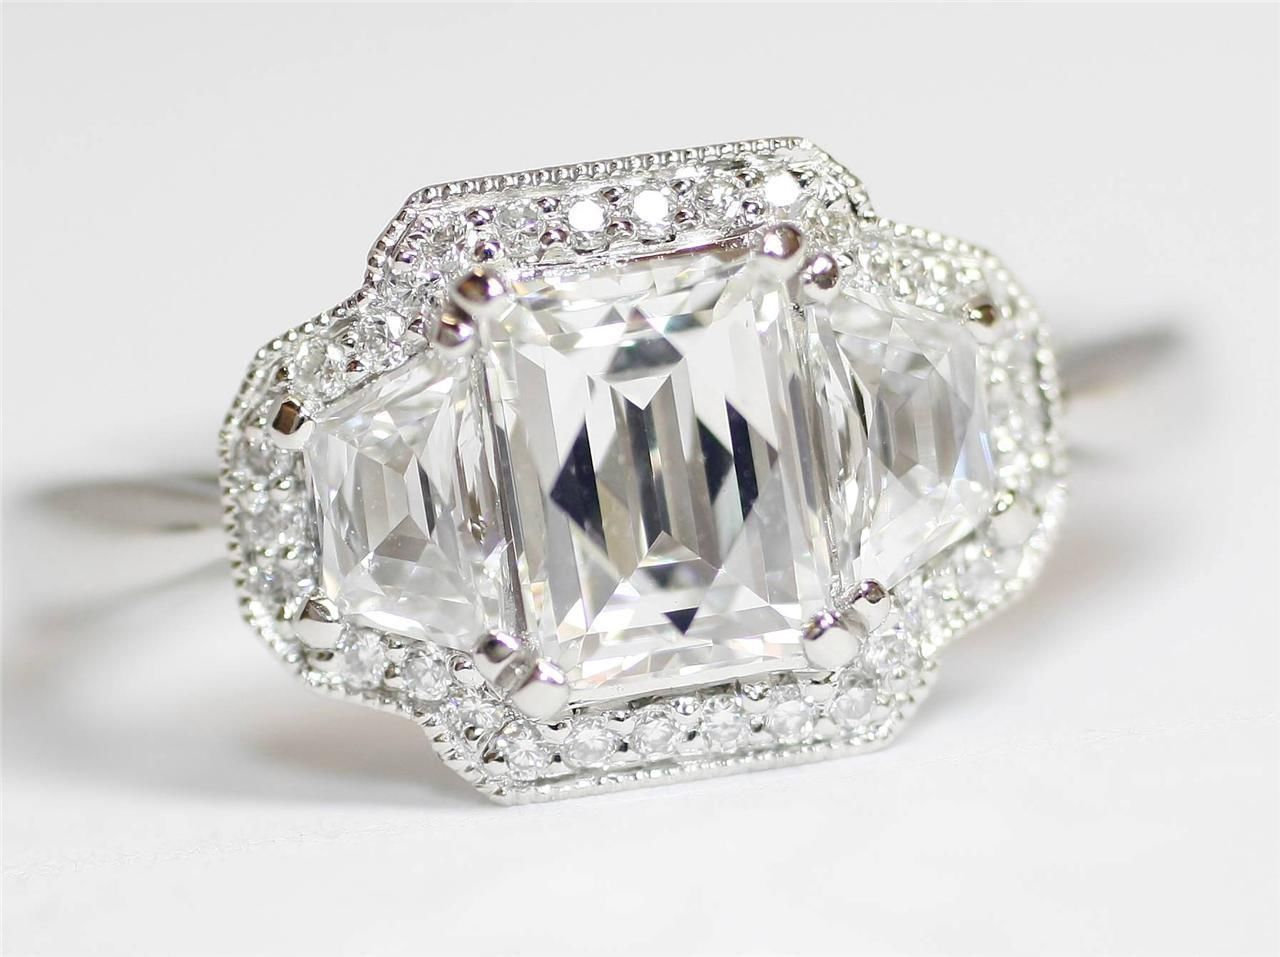 Are You Thinking About Auctioning Your Diamond Ring In Seattle, Wa? Or  Perhaps You Are Looking To Sell Your Diamond Necklace Or Earrings For A  Fair Cash